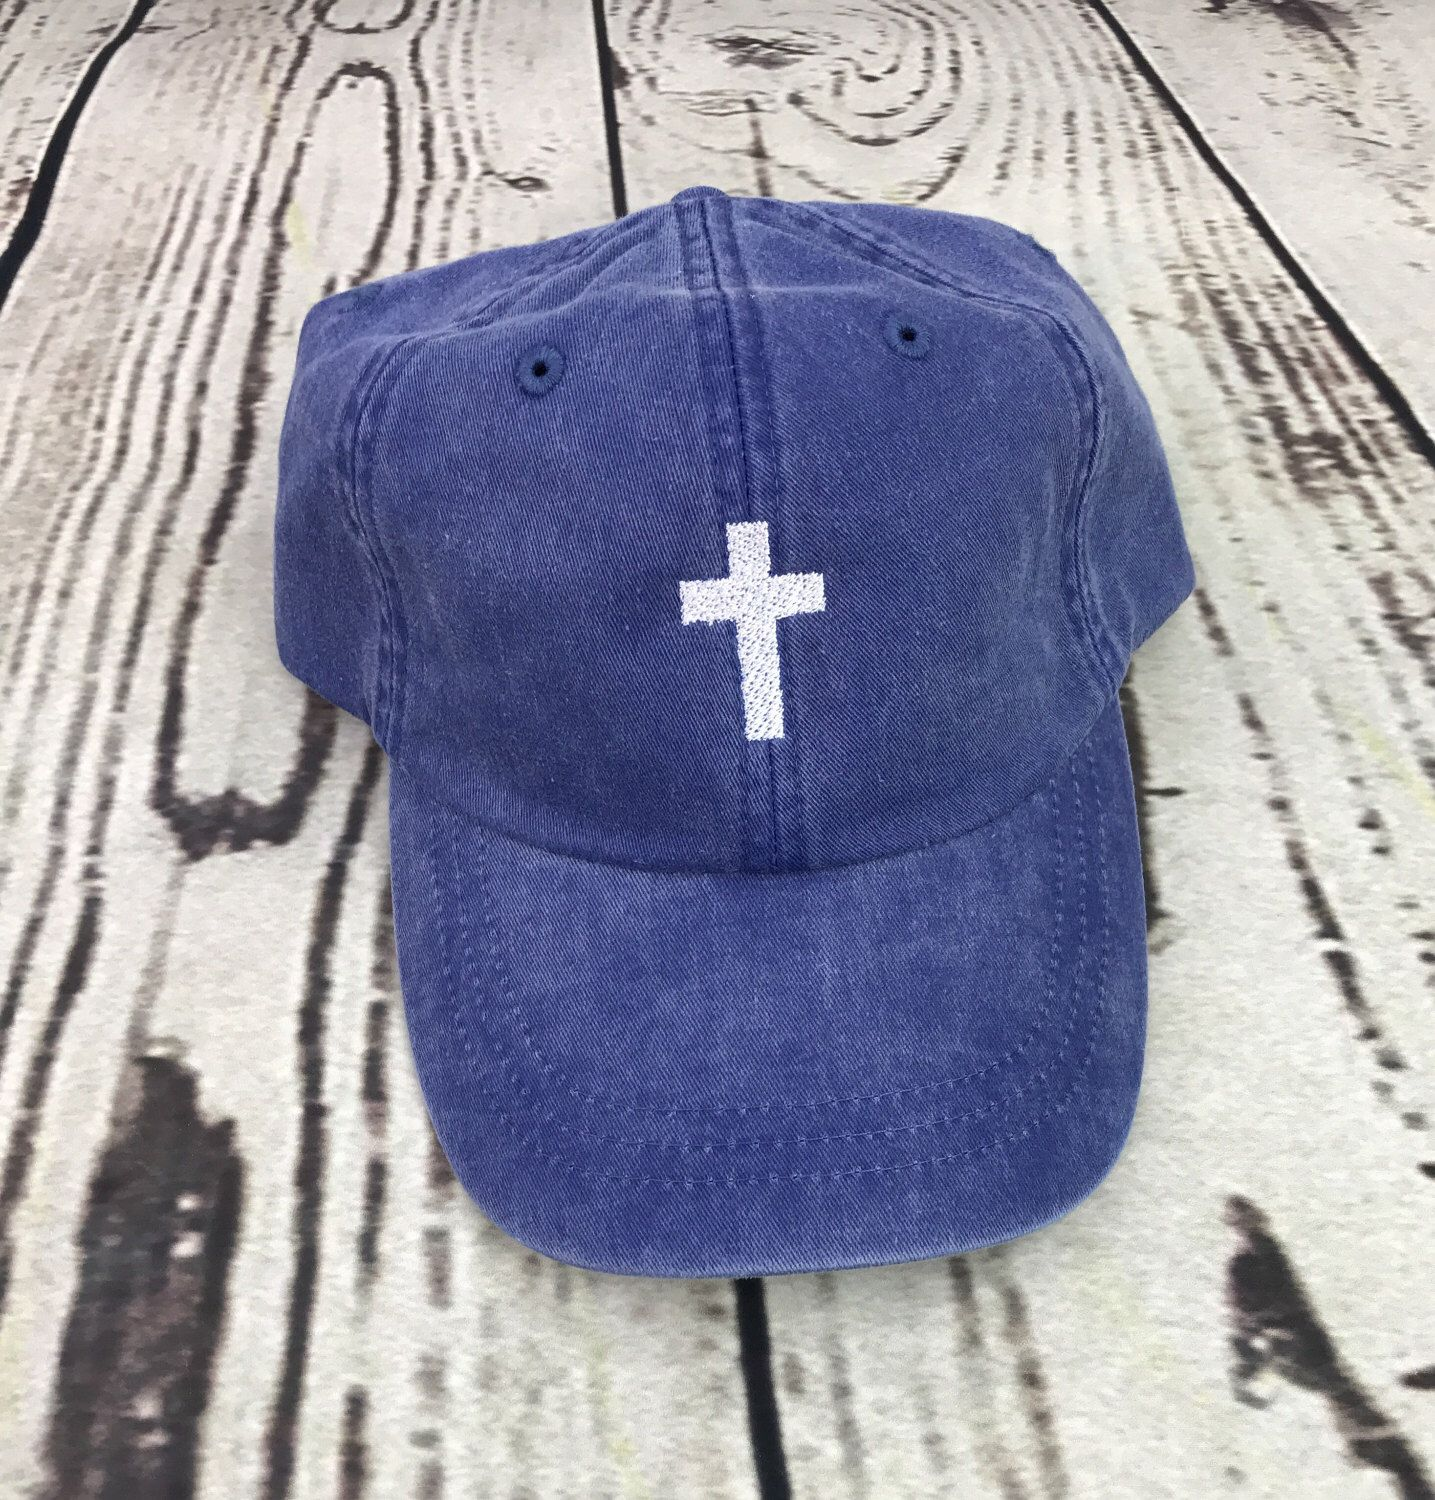 Cross hat - Cross baseball hat - Cross baseball cap - Pigment dyed hat -  Bible verse baseball hat - Healing verse hat - Cross cap - Cross baseball  cap ... f1c7bd4f8cd3